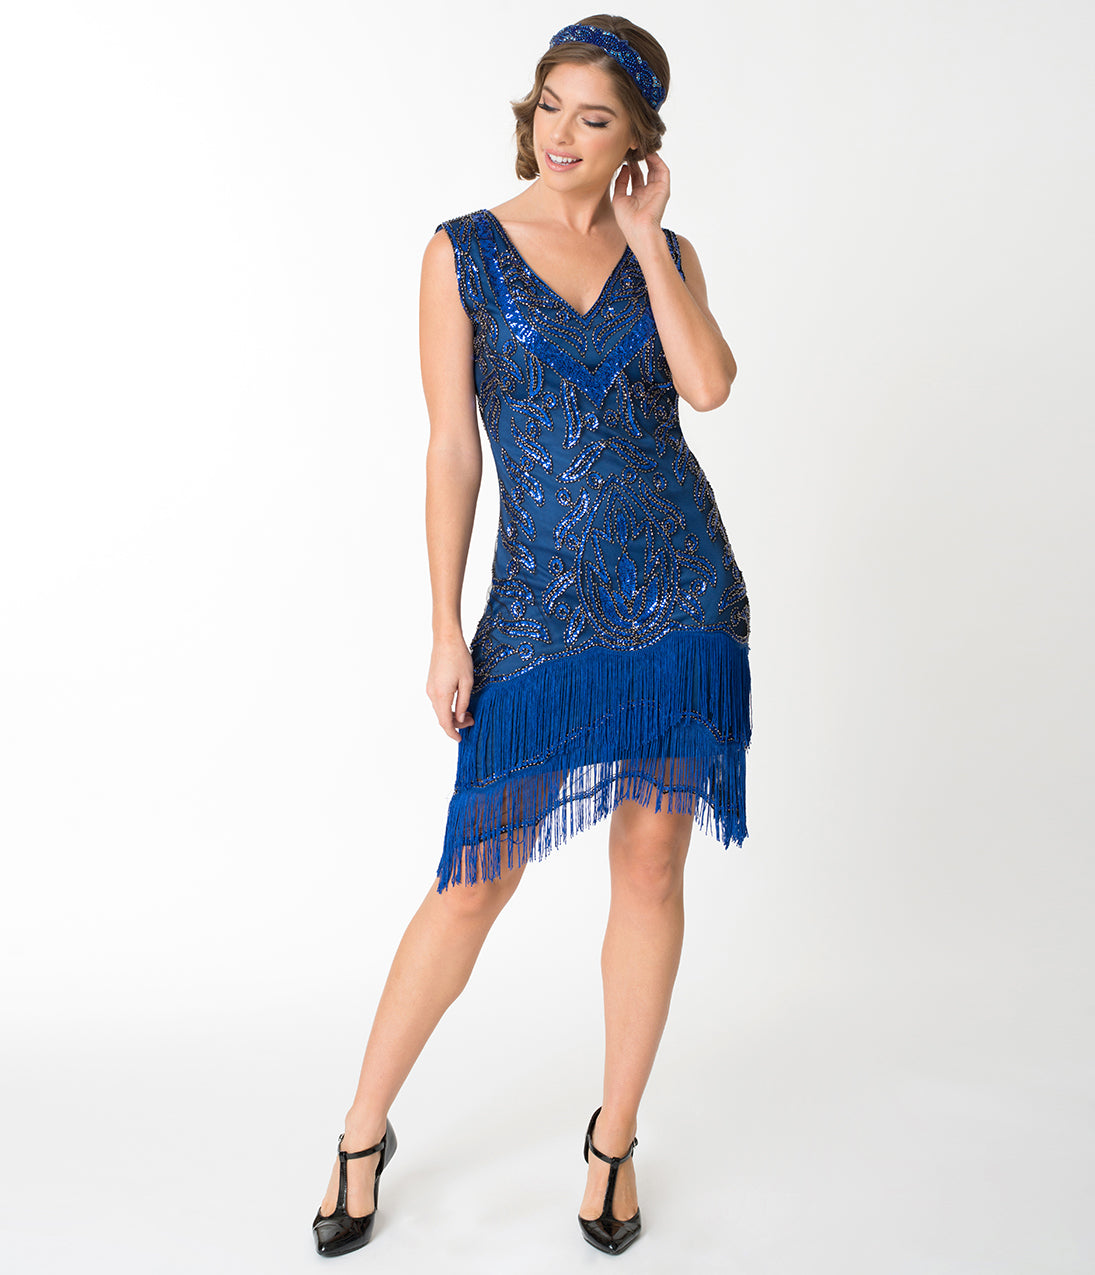 Roaring 20s Costumes- Flapper Costumes, Gangster Costumes Unique Vintage 1920S Style Royal Blue Beaded Zoe Cocktail Dress $98.00 AT vintagedancer.com